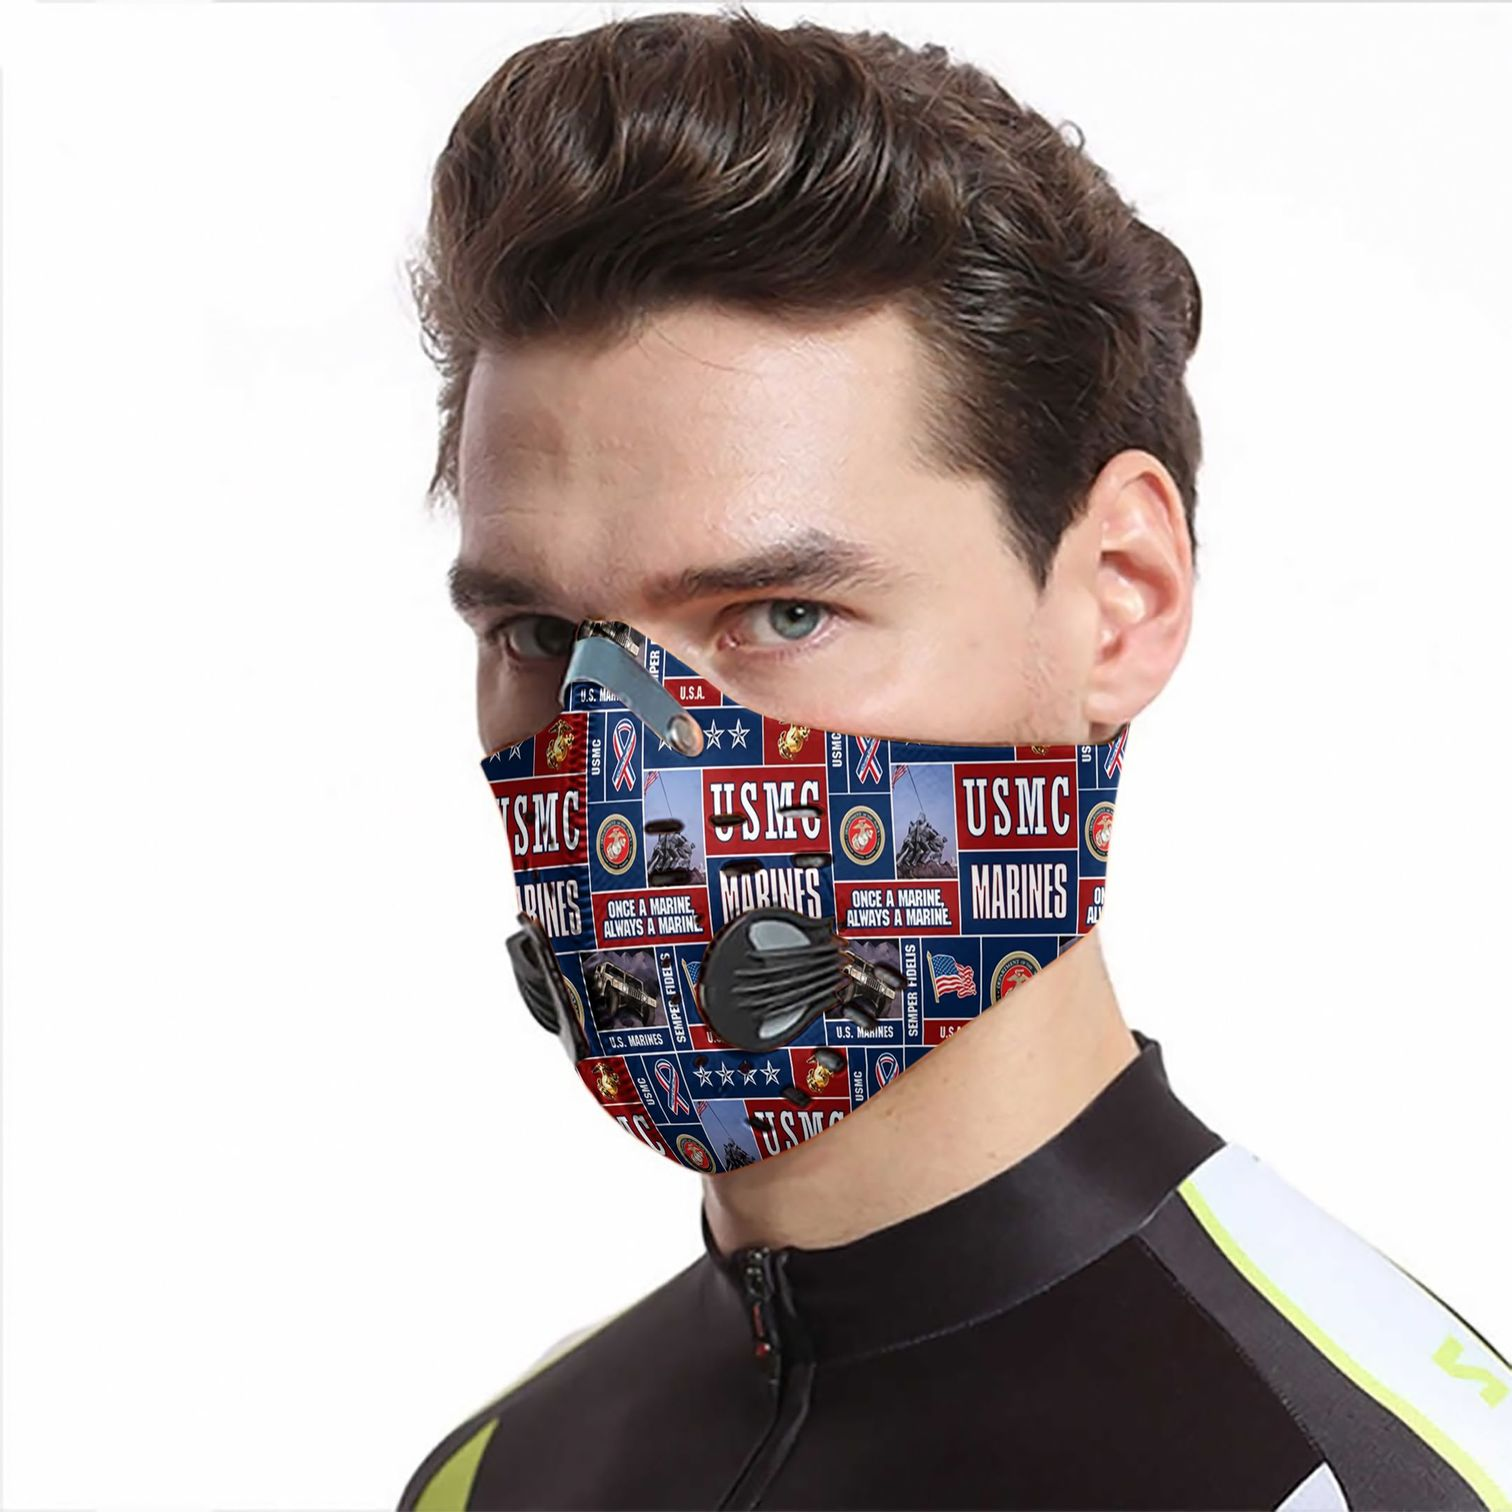 USMC marine be strong carbon pm 2,5 face mask 2